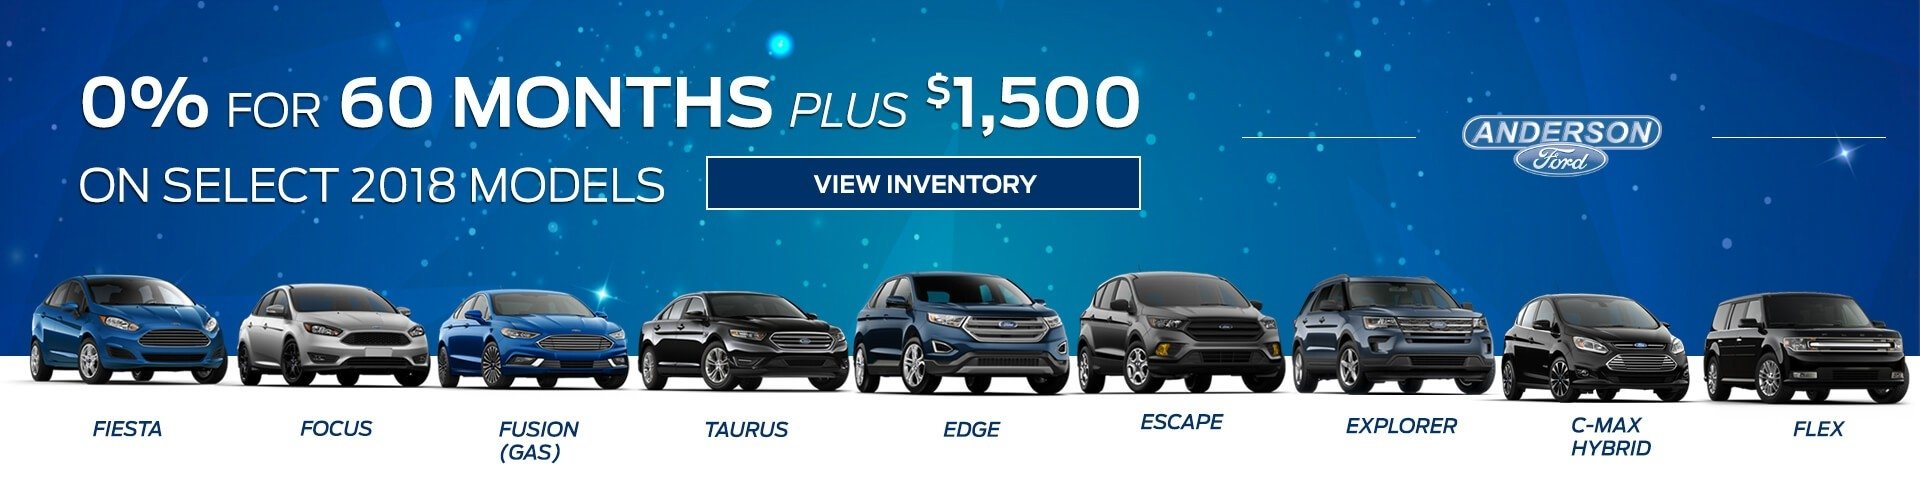 0% for 60 Months Plus $1,500